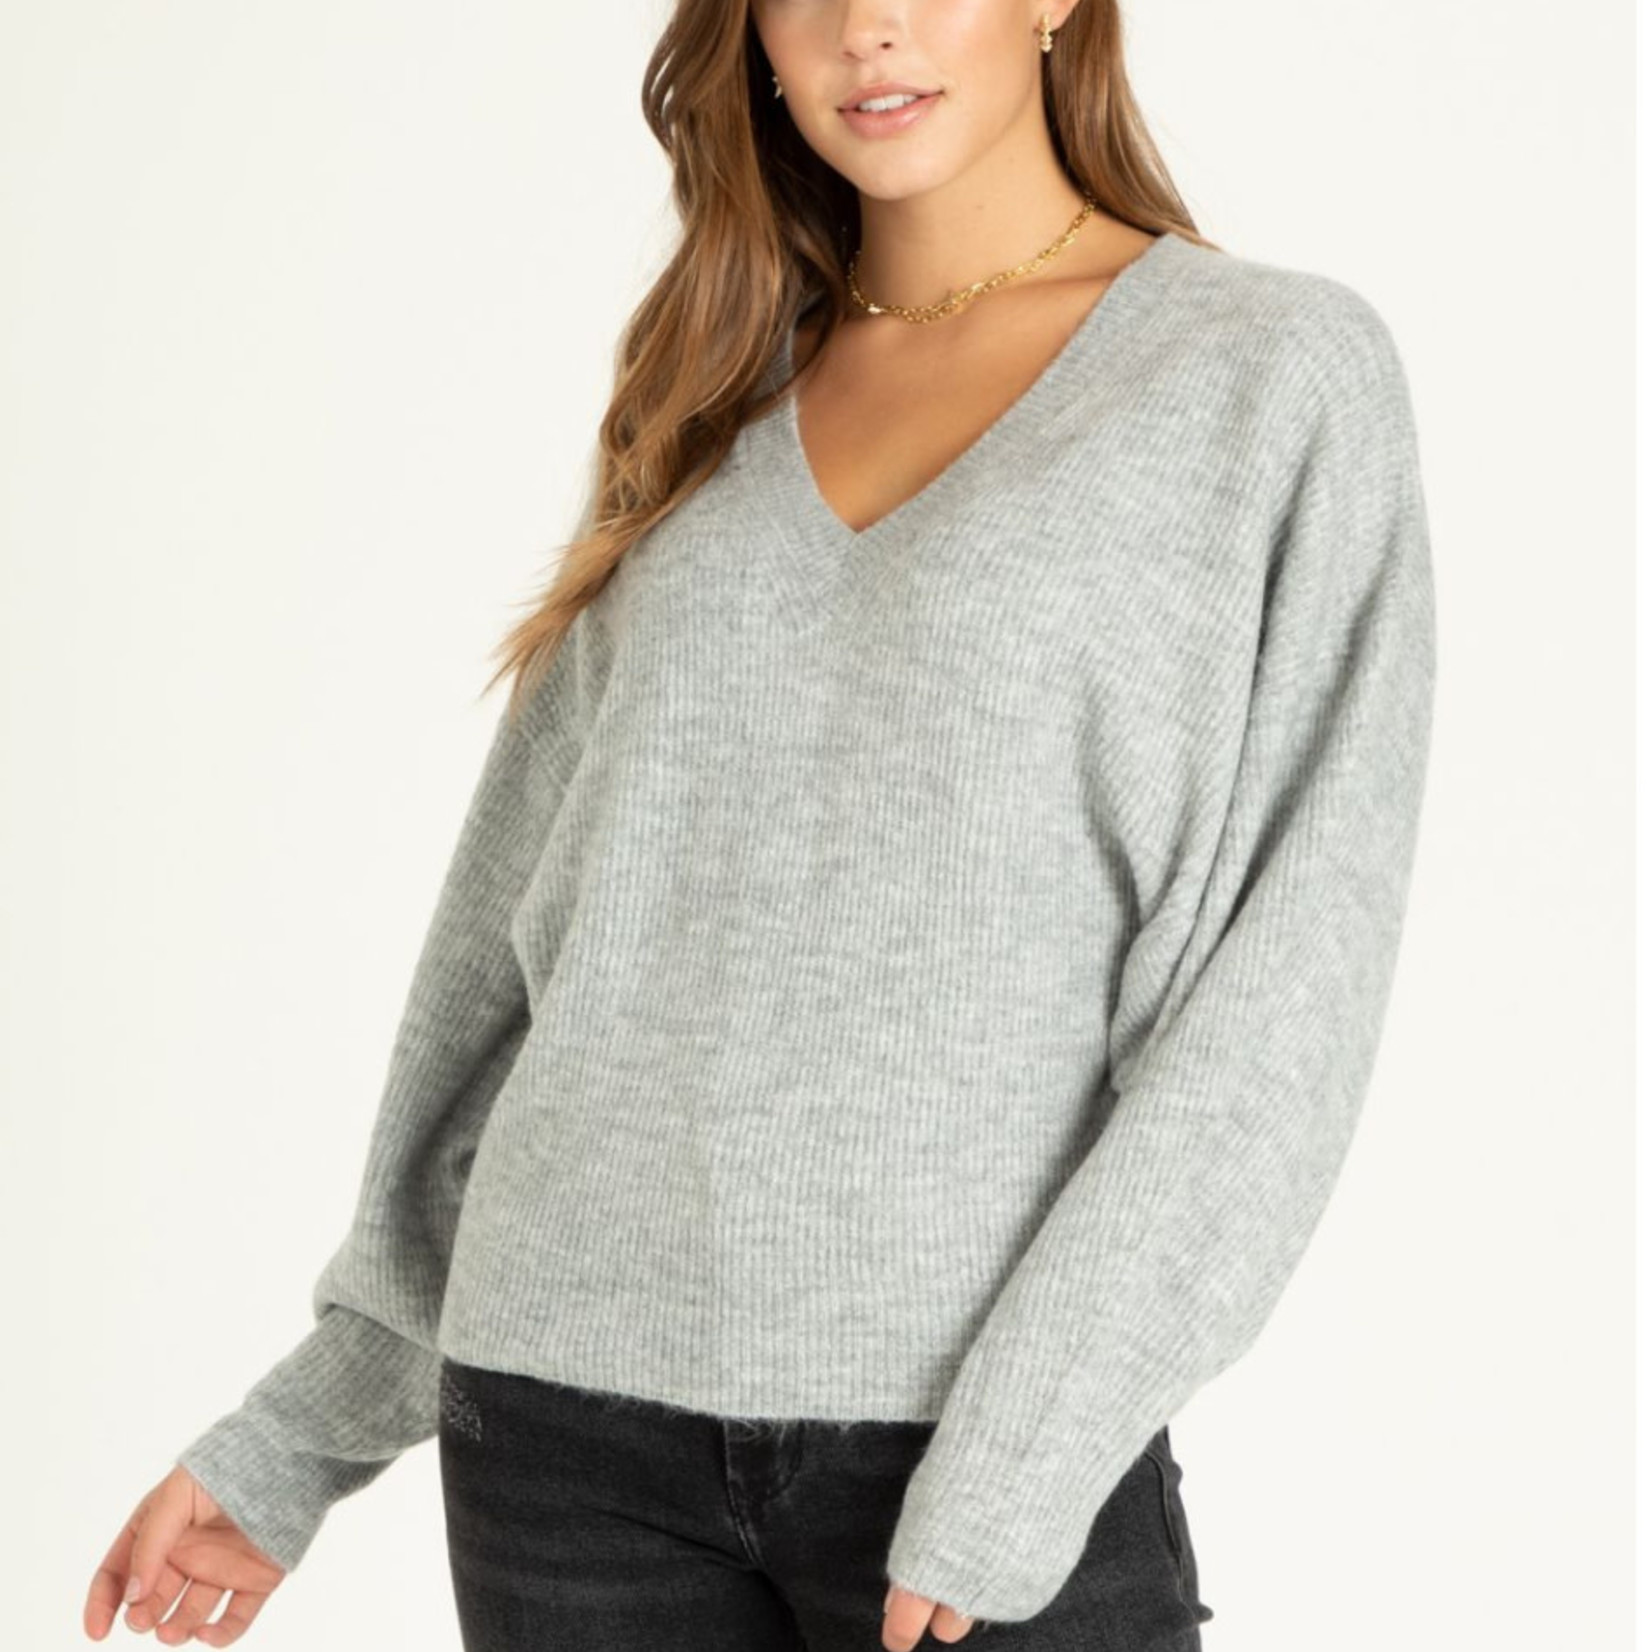 Another love Deep VNeck Dolman Sleeves Pullover ANOTHER LOVE CLOTHING